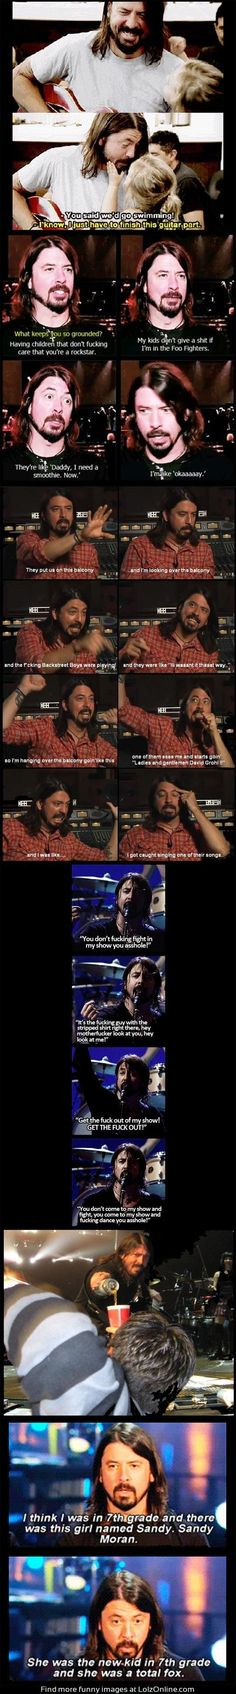 This is why Dave Grohl  - comedy value +1 million!